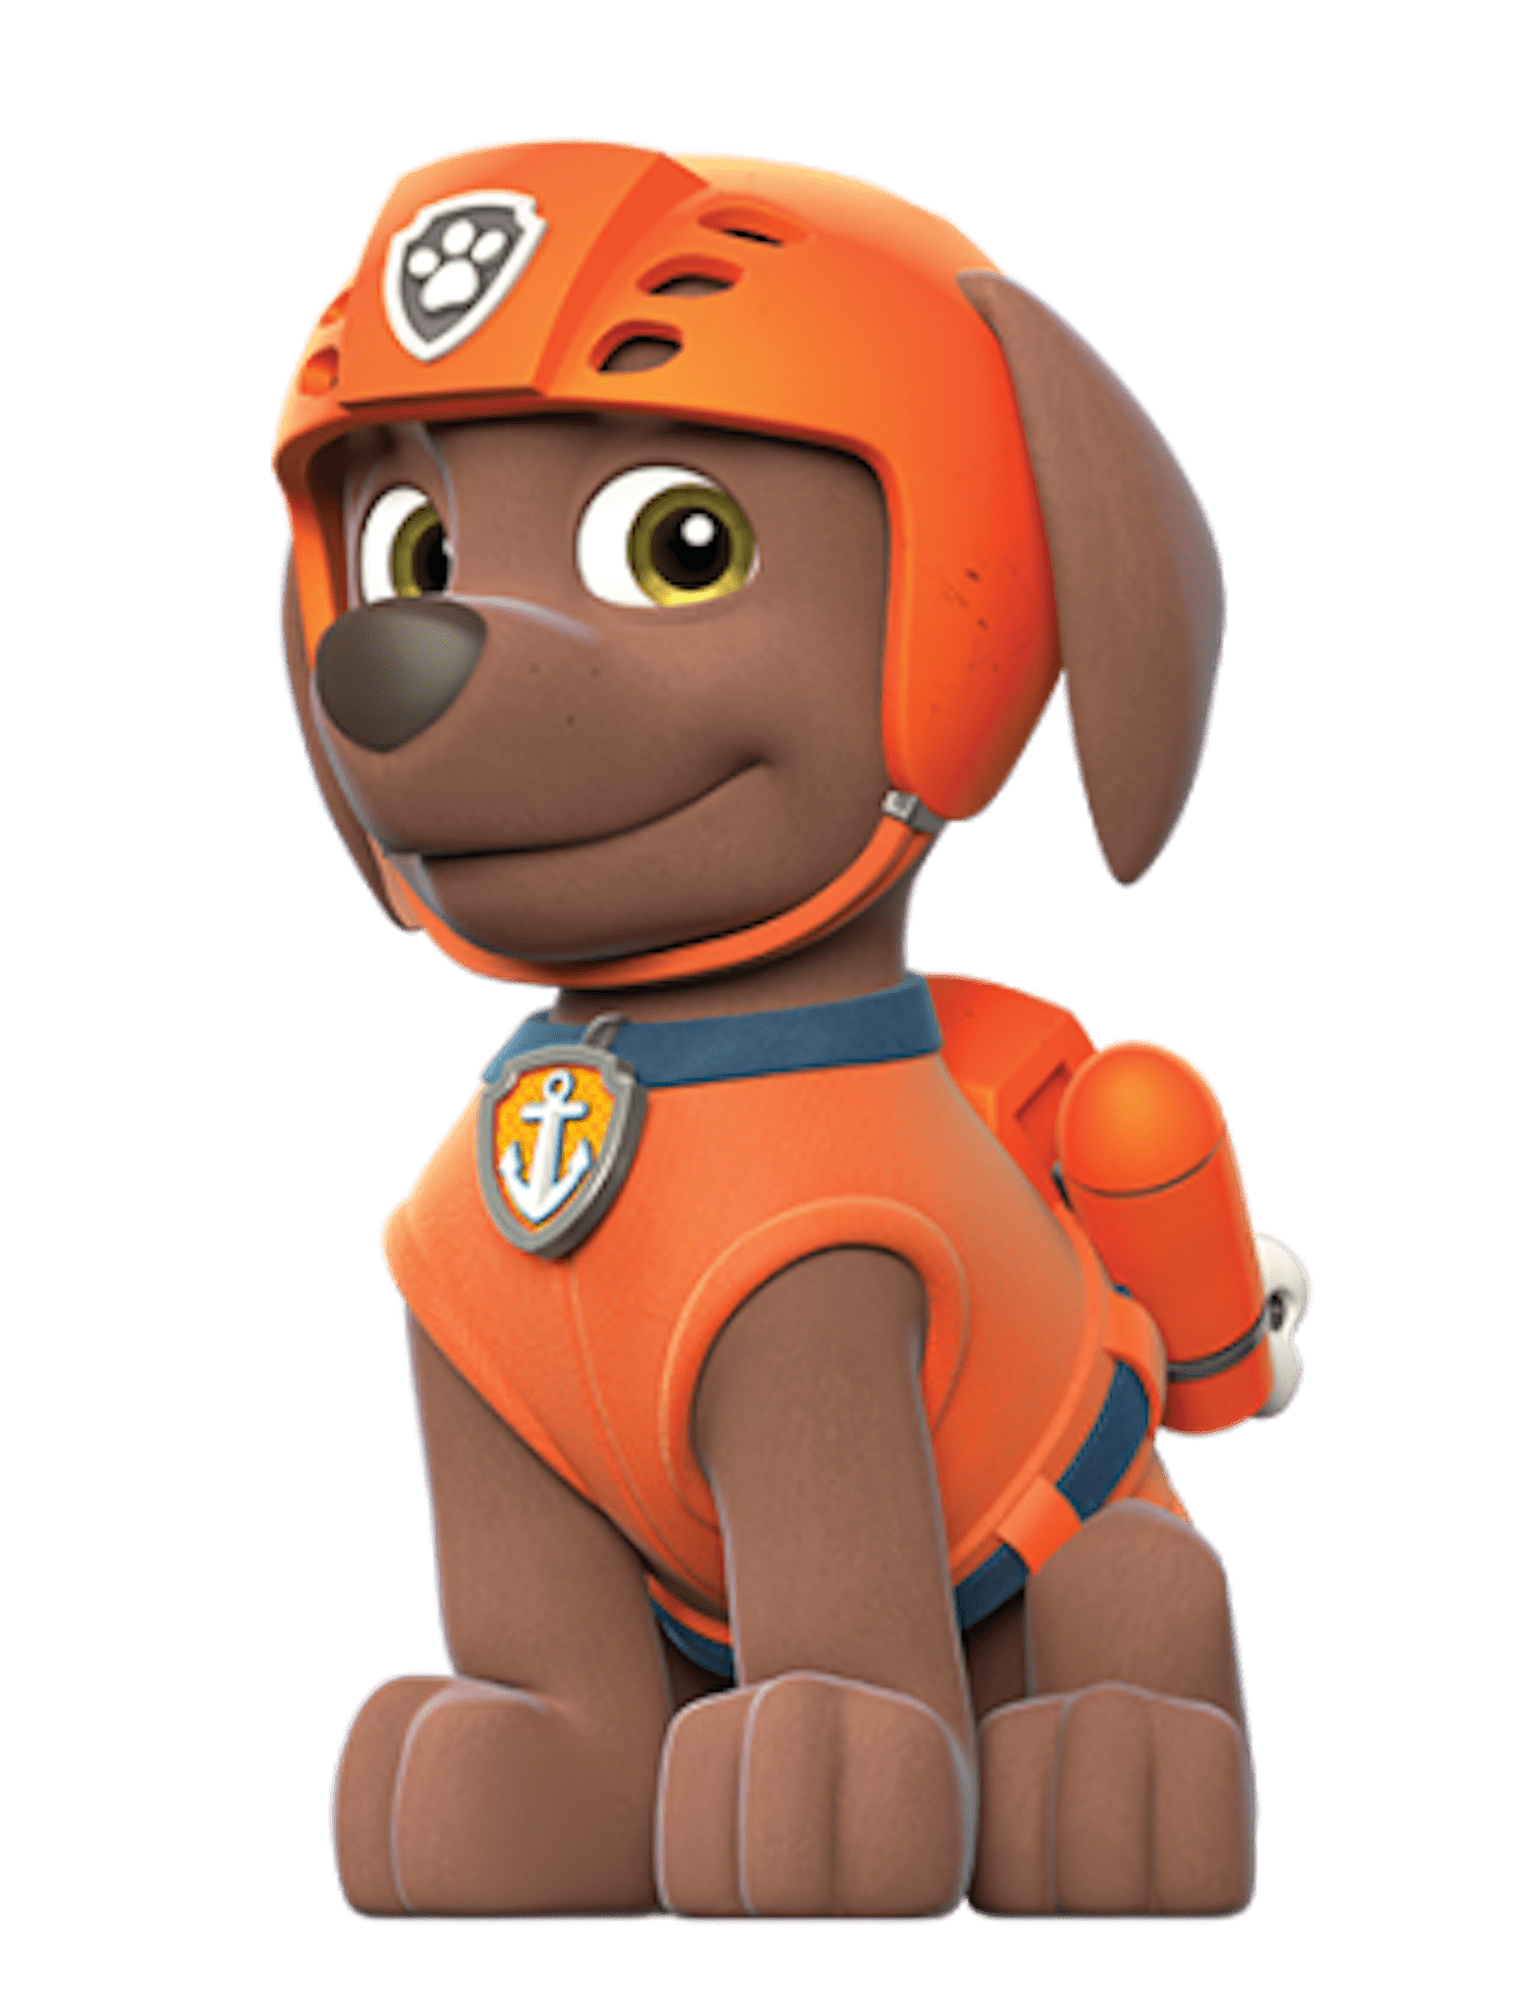 Paw patrol clip art clipart black and white download Zuma Is Ready Paw Patrol Clipart Png clipart black and white download